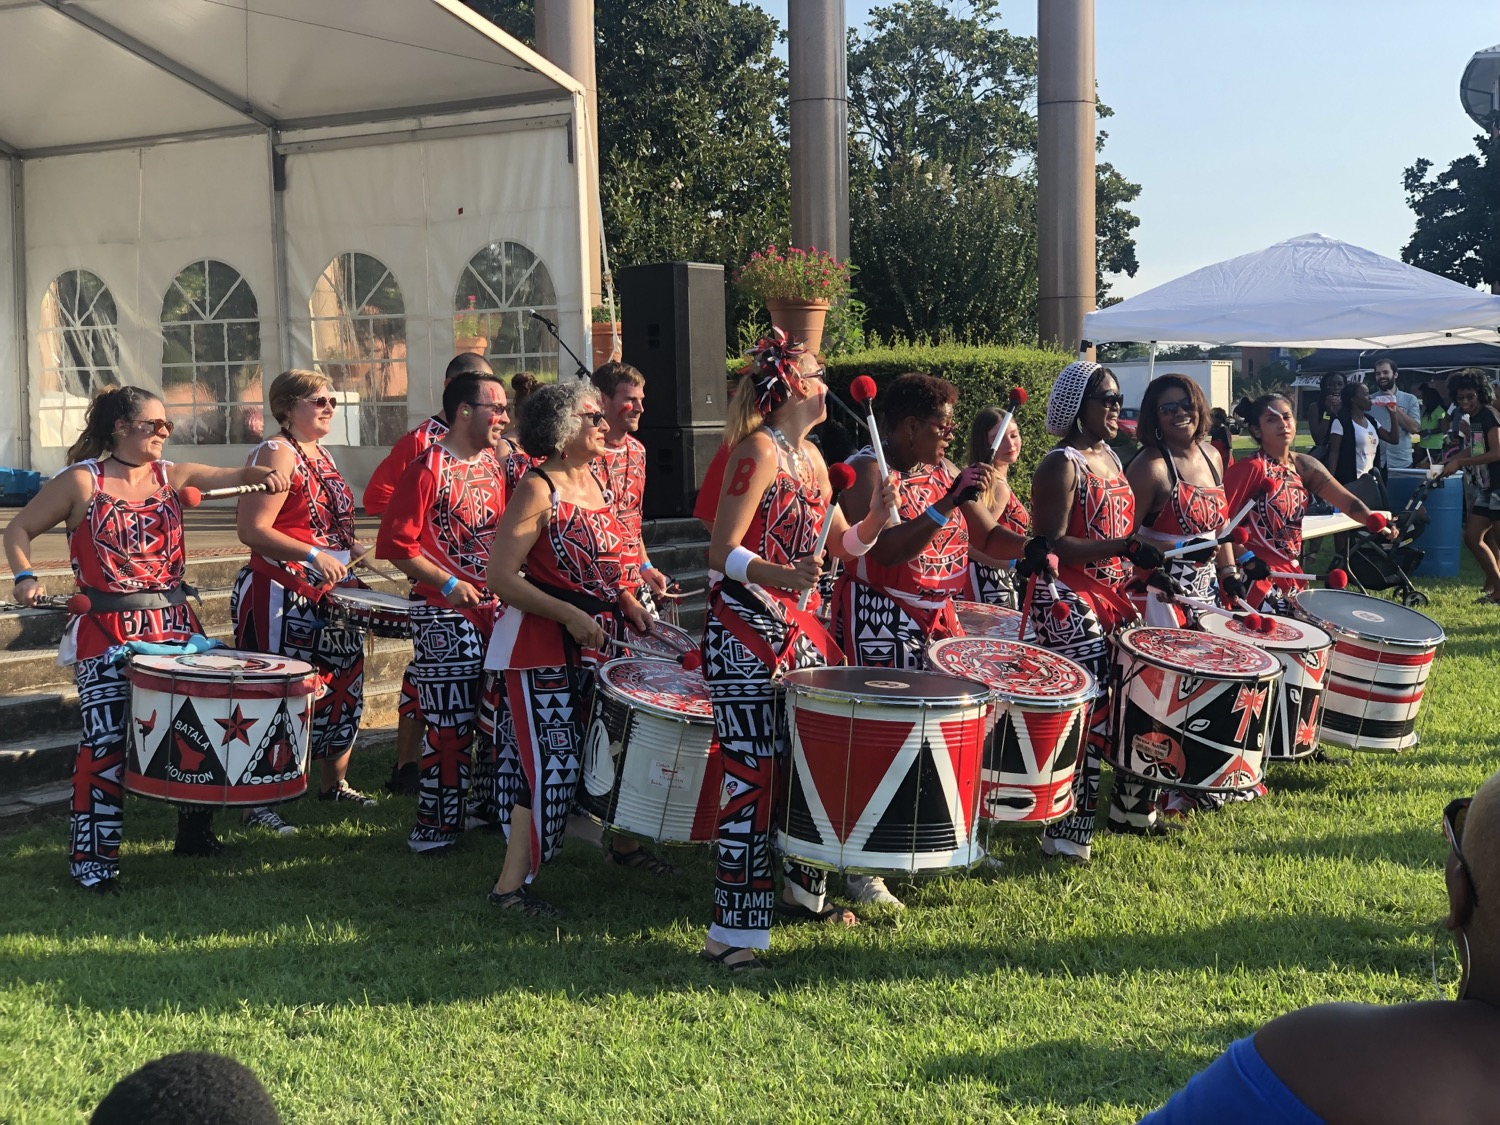 Batala Houston at AfriFest 2019